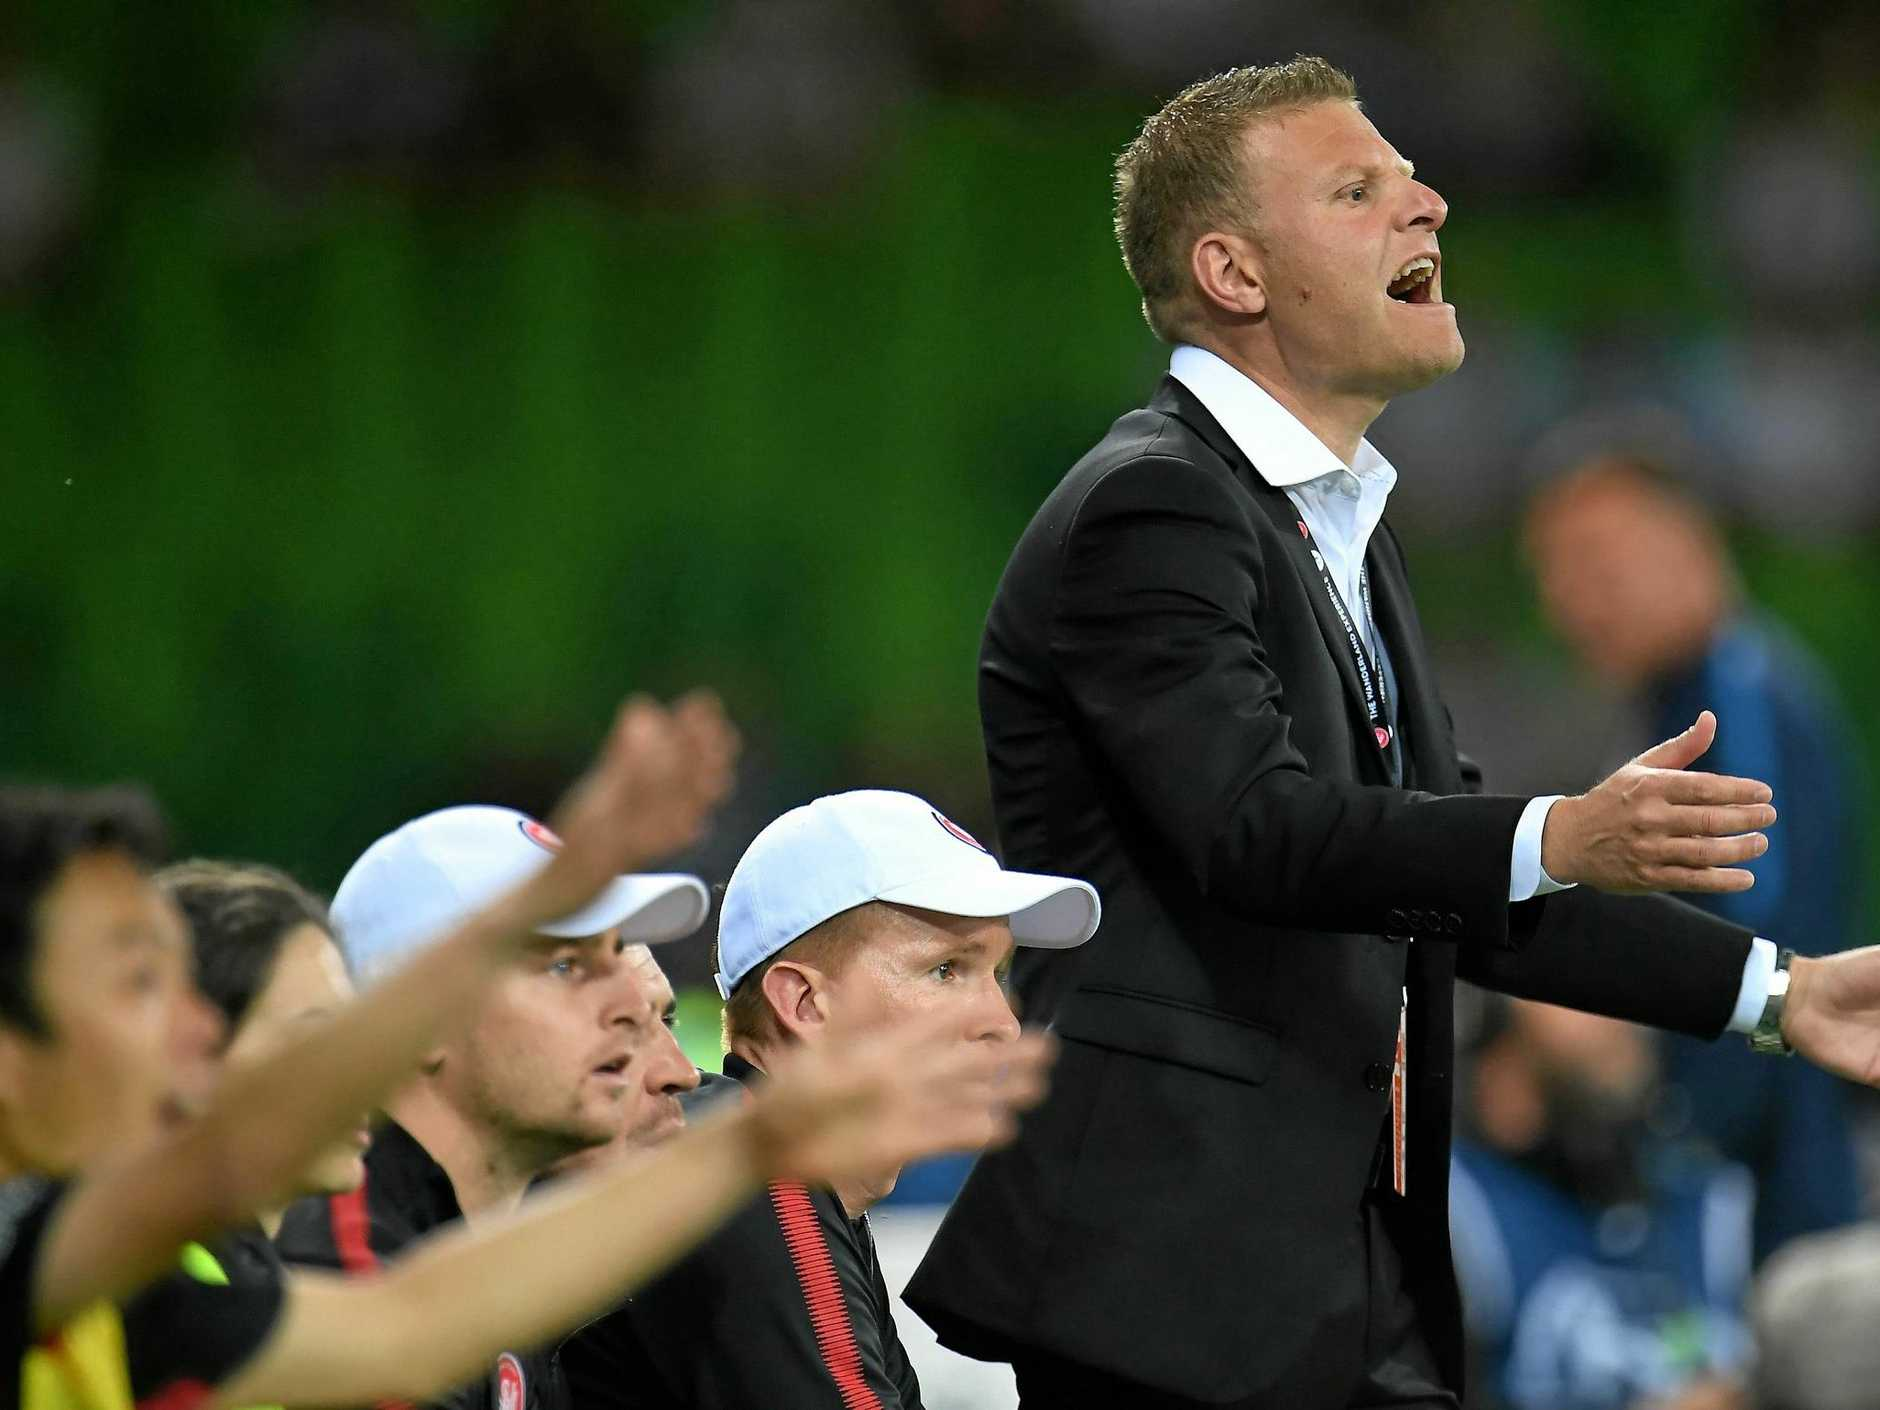 Wanderers coach Josep Gombau (right) urges his players on from the sidelines.